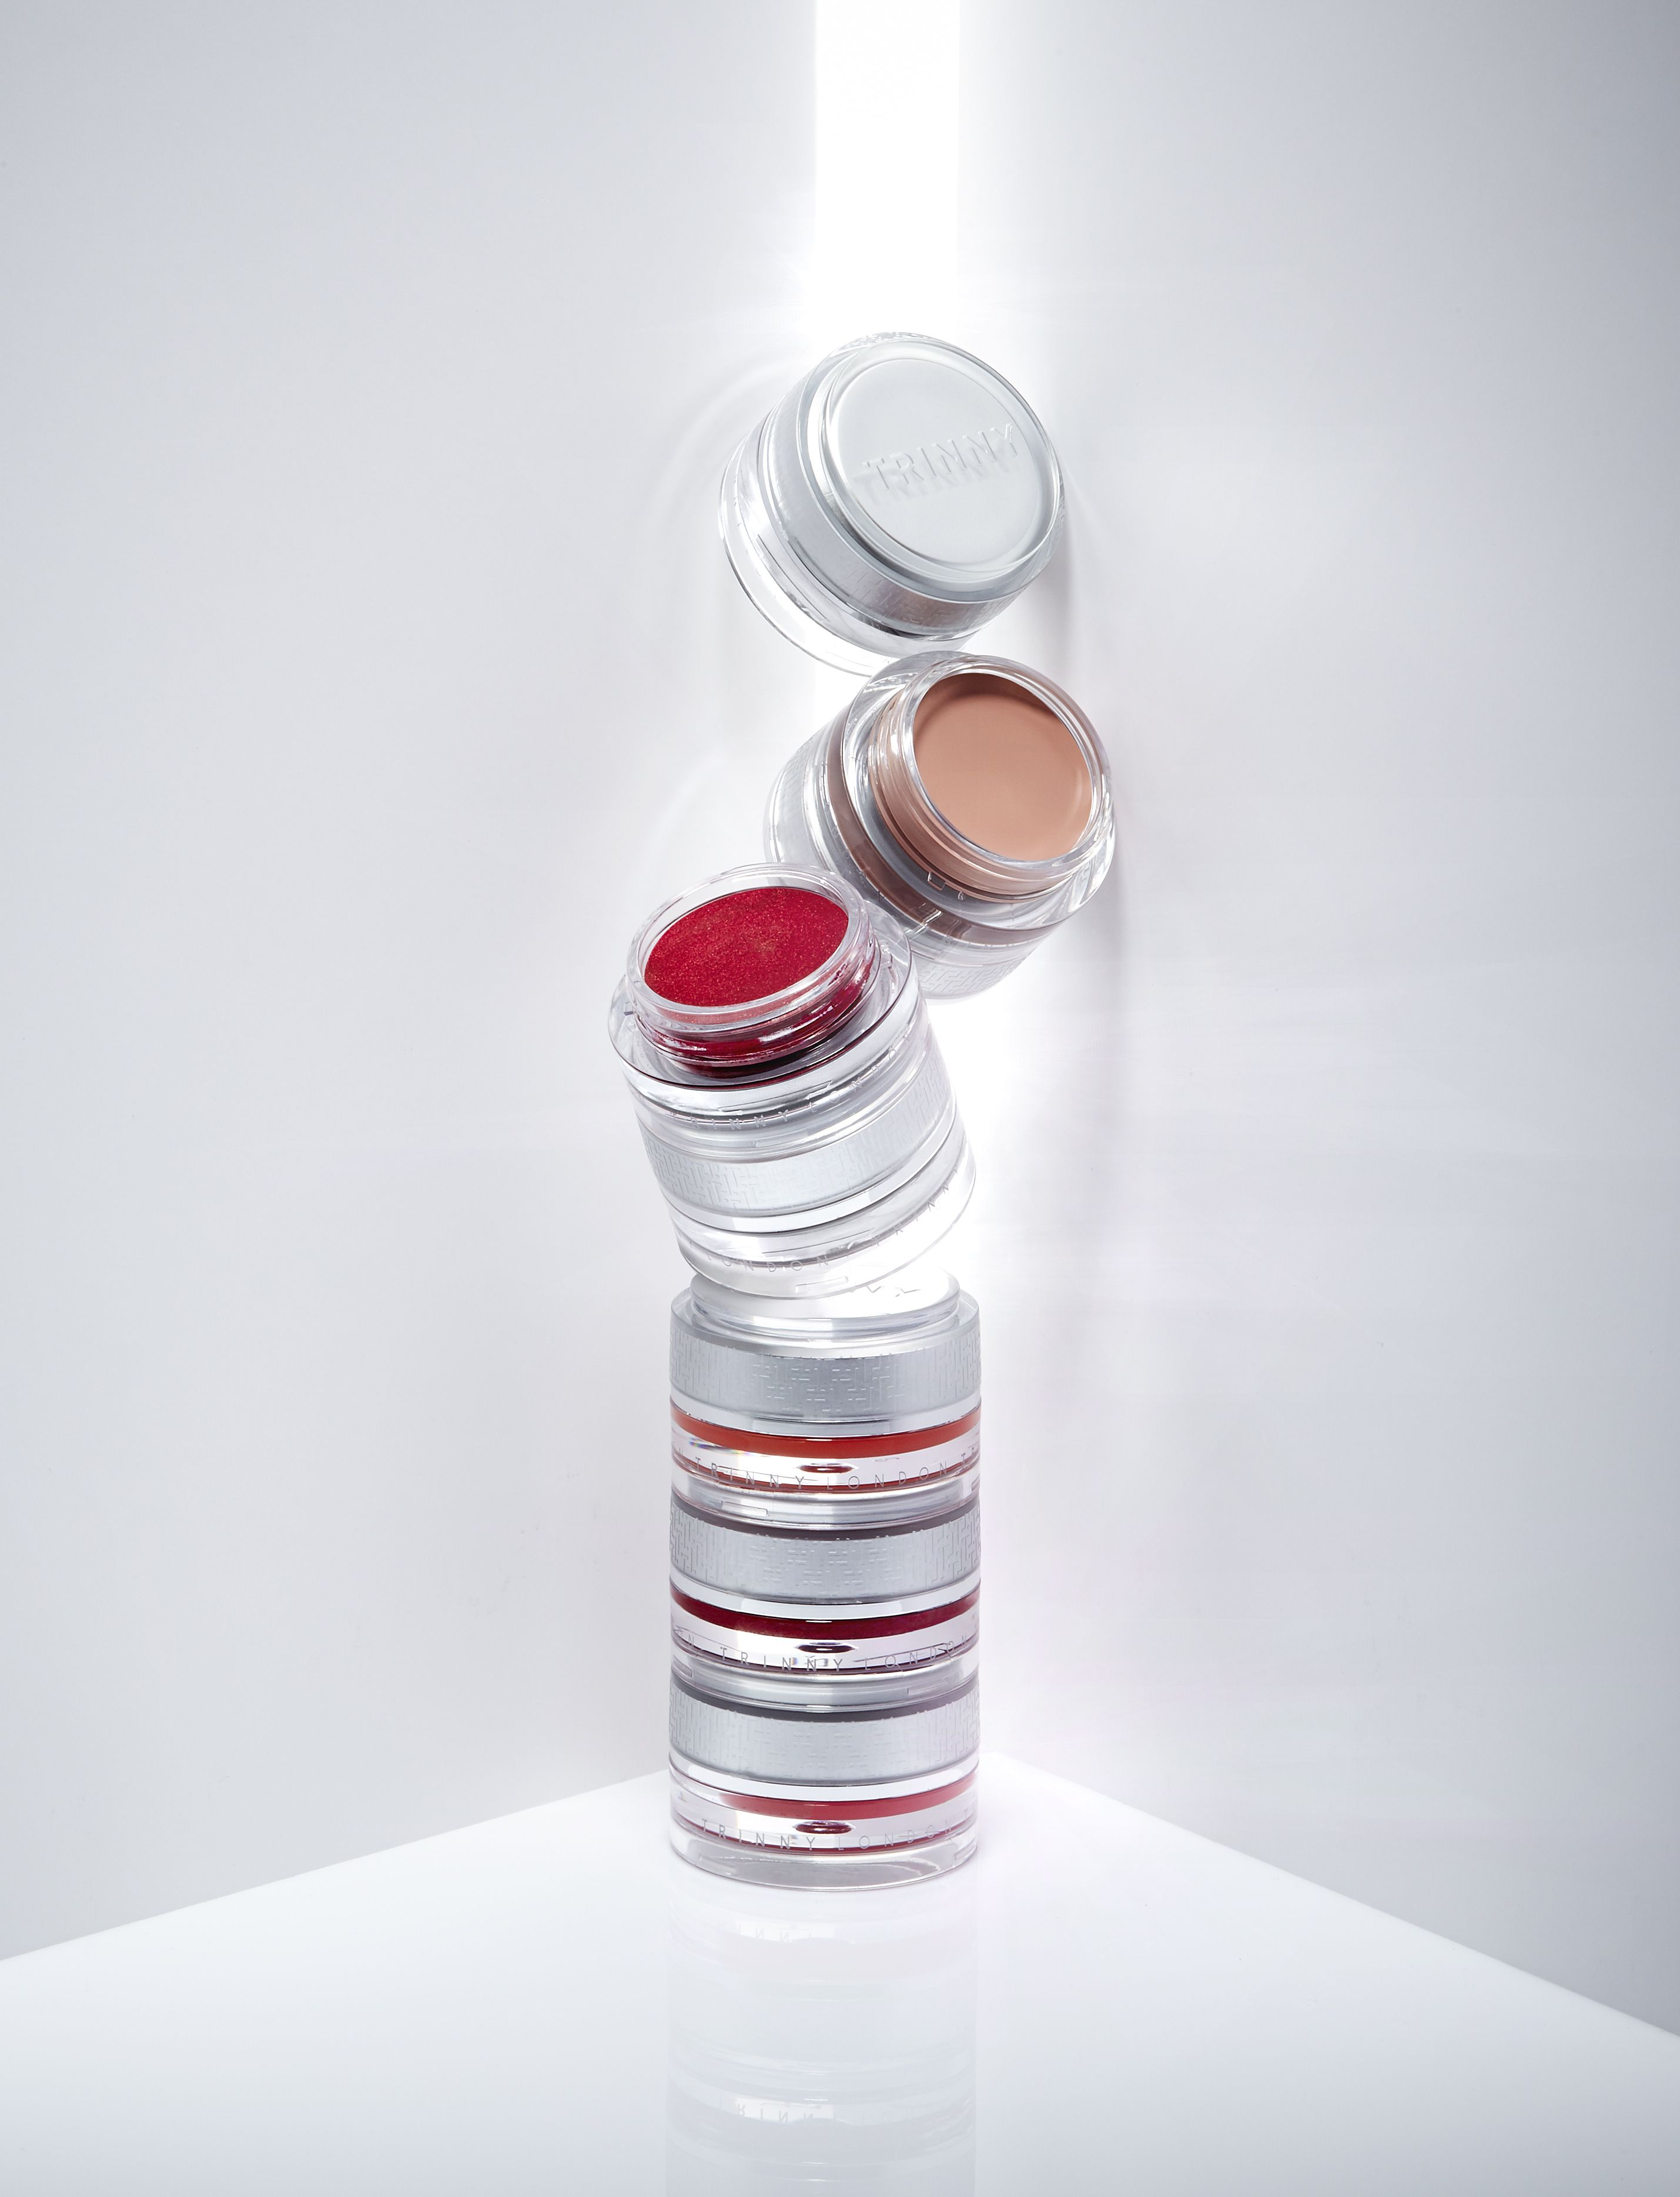 Trinny London, a stackable, portable, curated makeup range